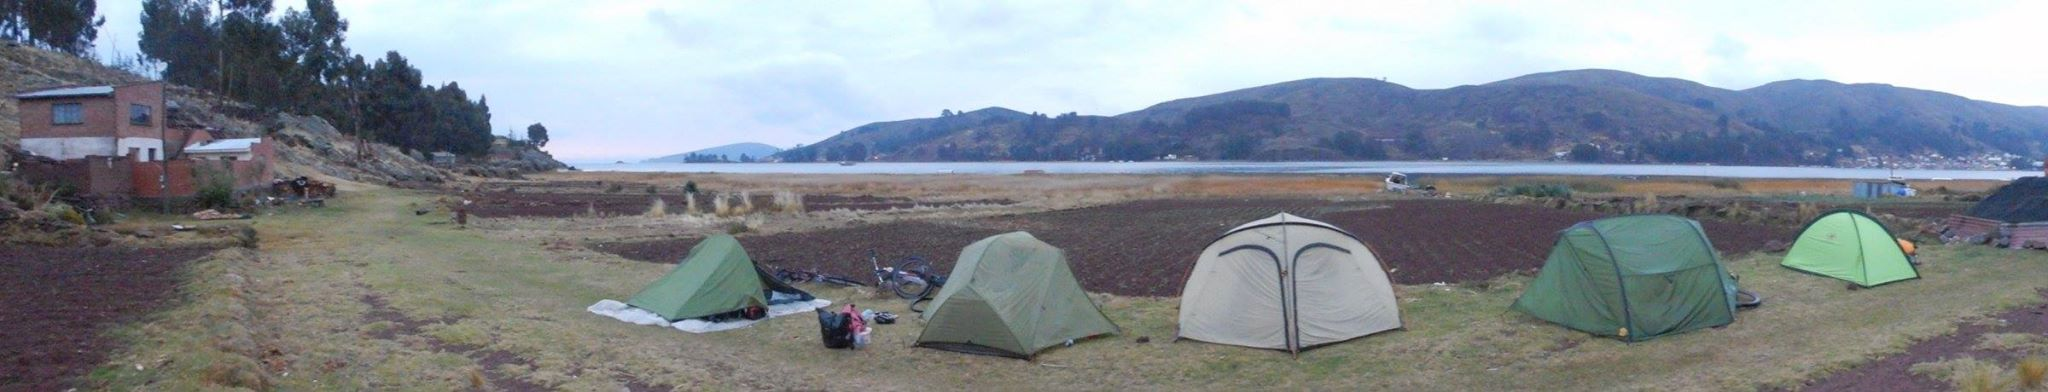 5 tents set up along the Lake umongst farmland